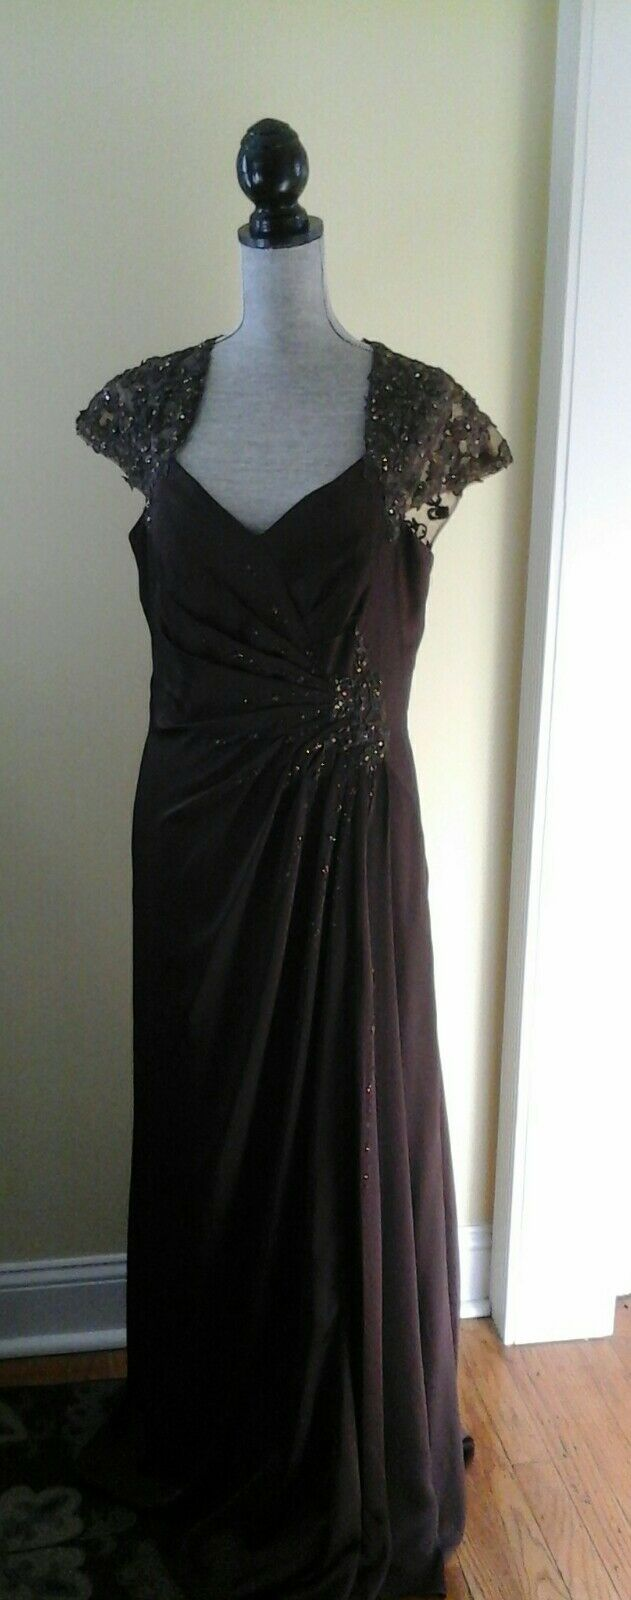 NEW W/ TAGS JADE COUTURE DRESS FORMAL MOTHER OF BRIDE BROWN SIZE 12 MRSP 350